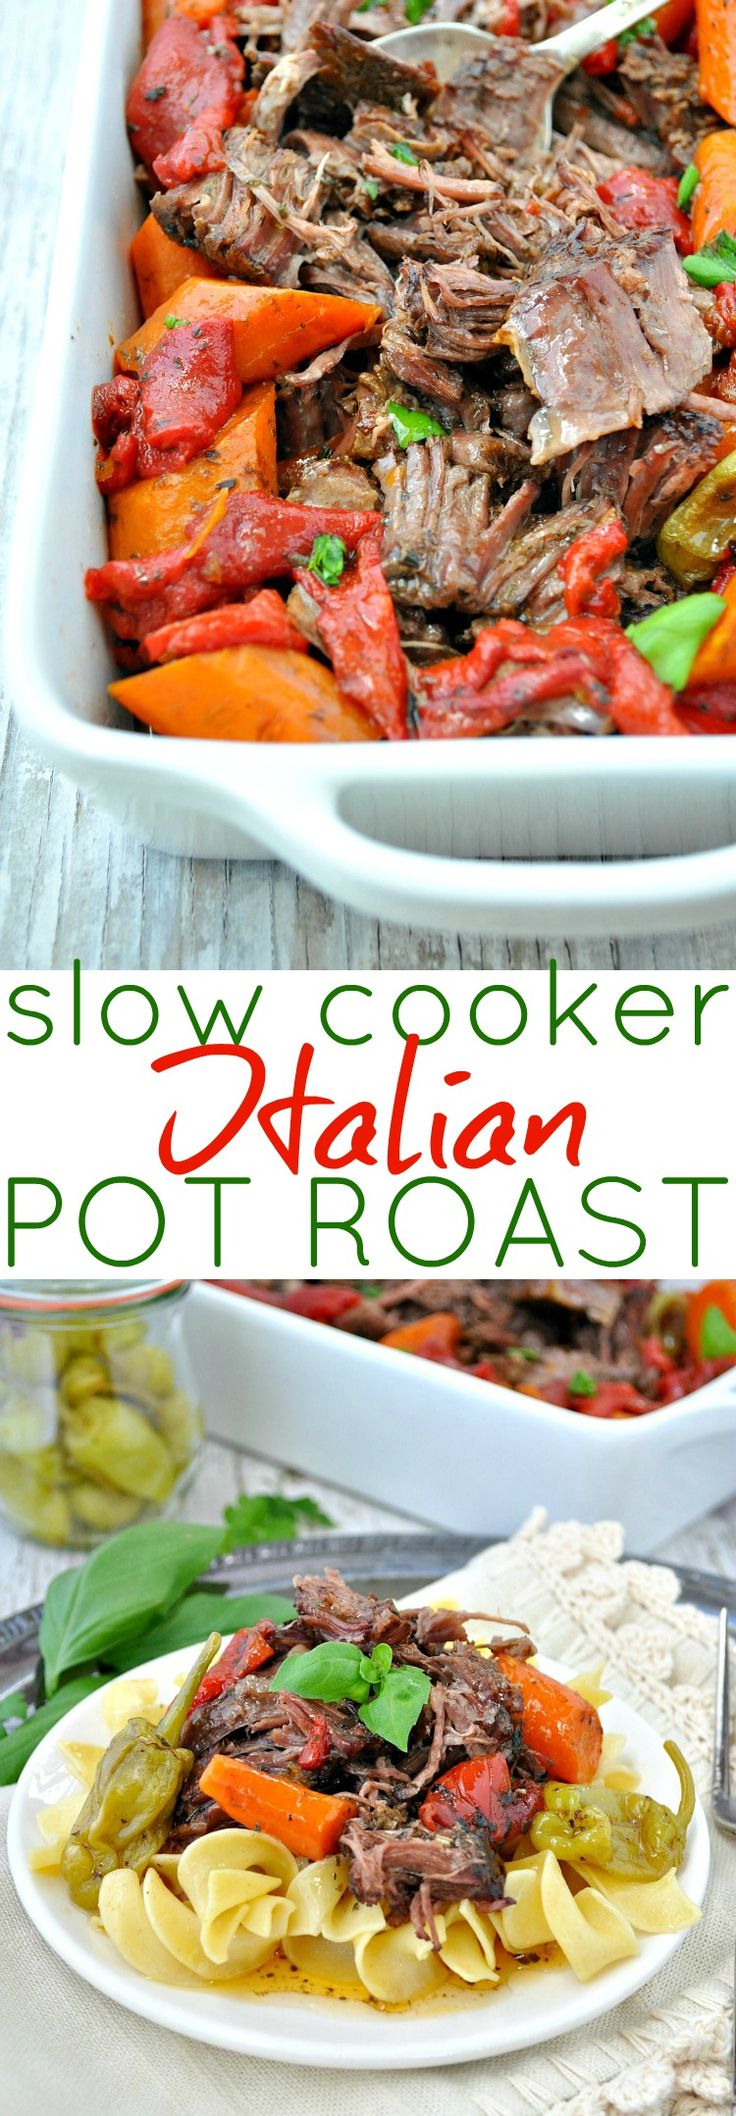 Tender, juicy, and full of flavor, this Slow Cooker Italian Pot Roast is an easy dinner recipe that your family will love!